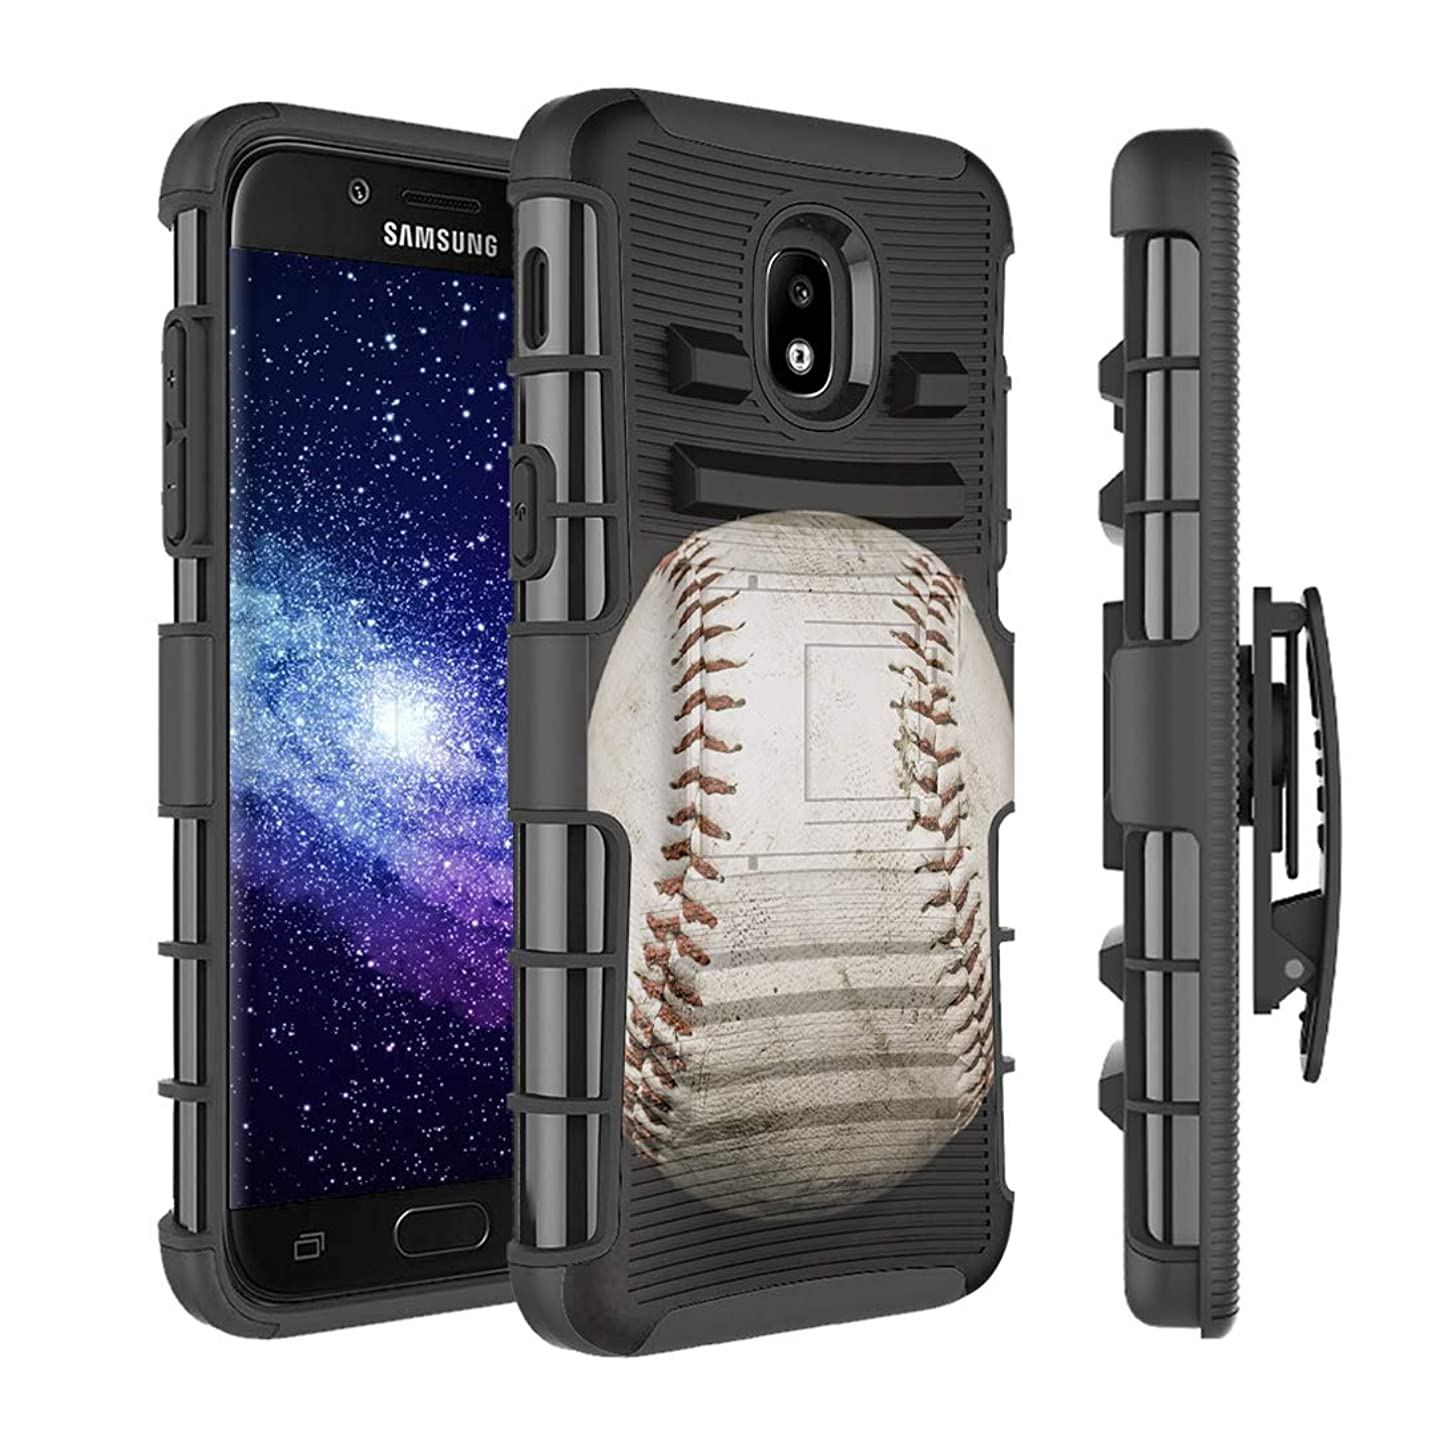 Capsule Case Compatible with Samsung Galaxy J7 2018 (J737), J7 Star, J7 Aero, J7 Refine, J7V 2nd Gen, J7 Crown, J7 Eon [Armor Kickstand Holster Combo Case Black] - (Baseball)